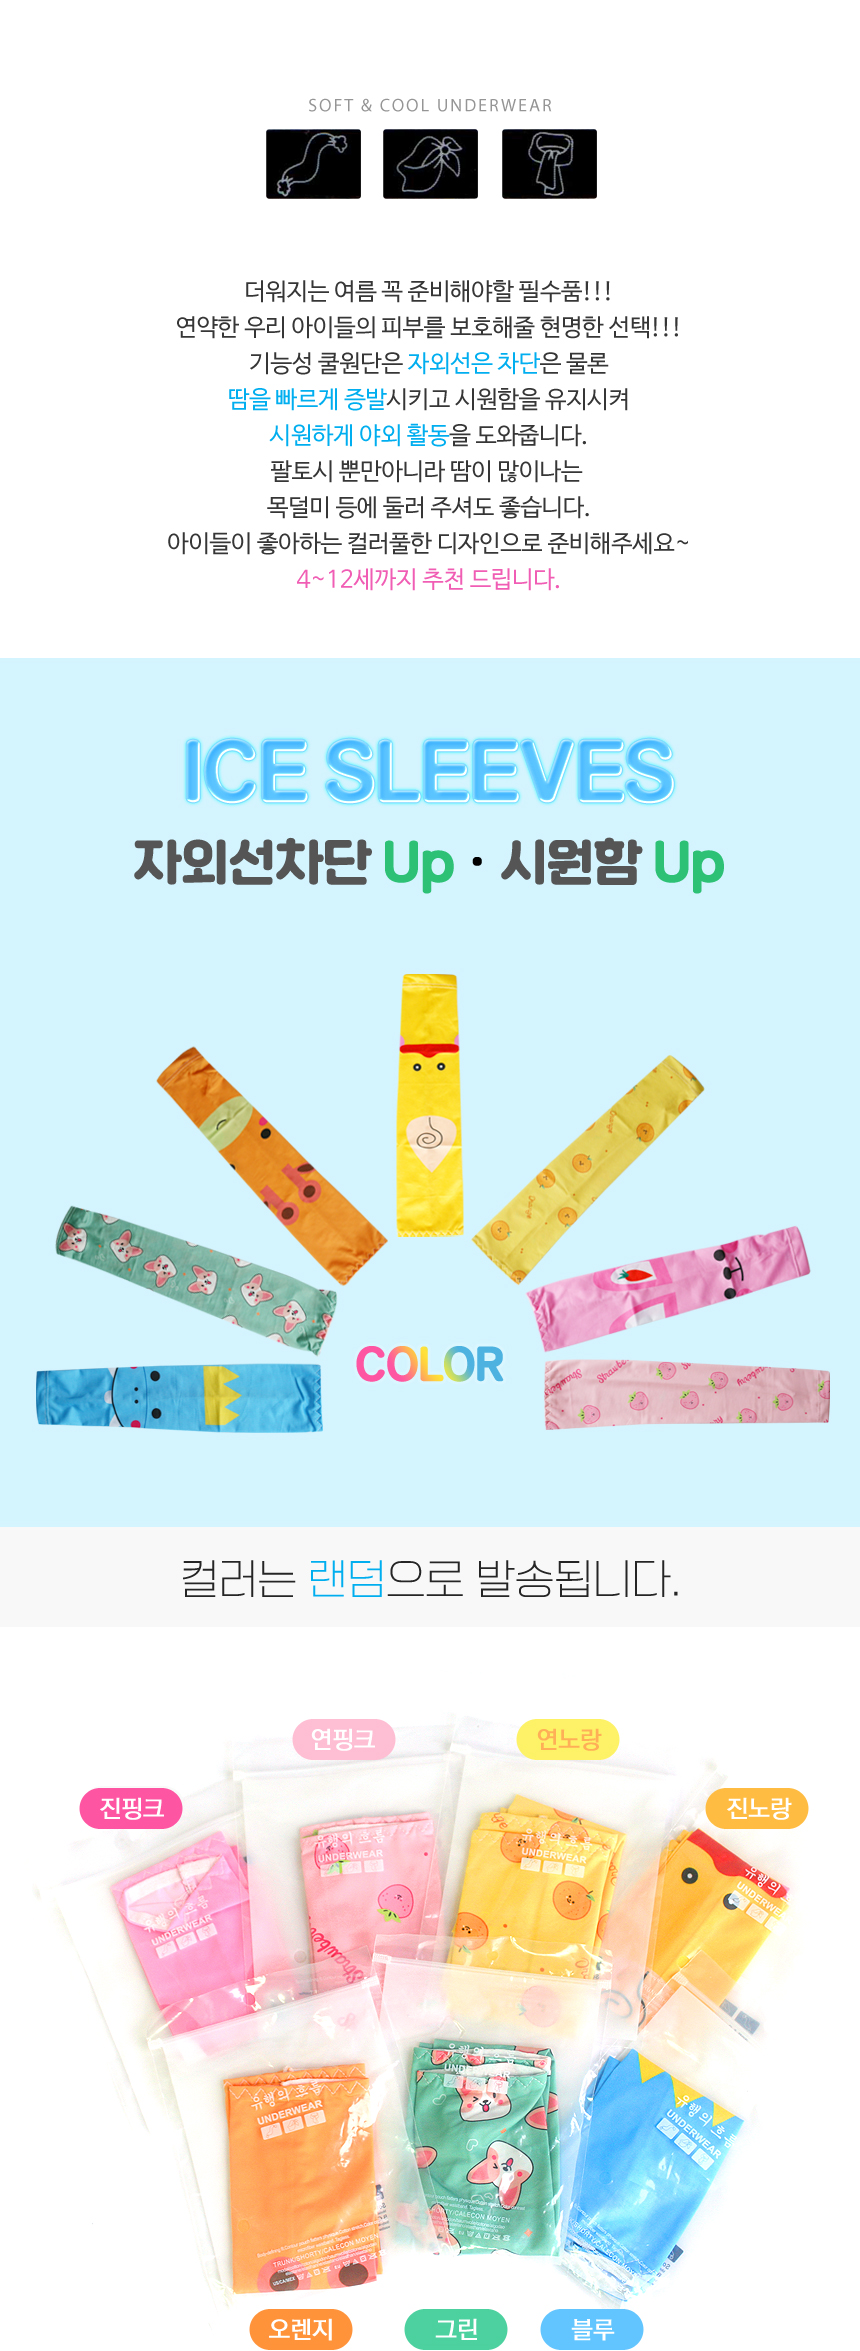 ice_sleeves_02.jpg